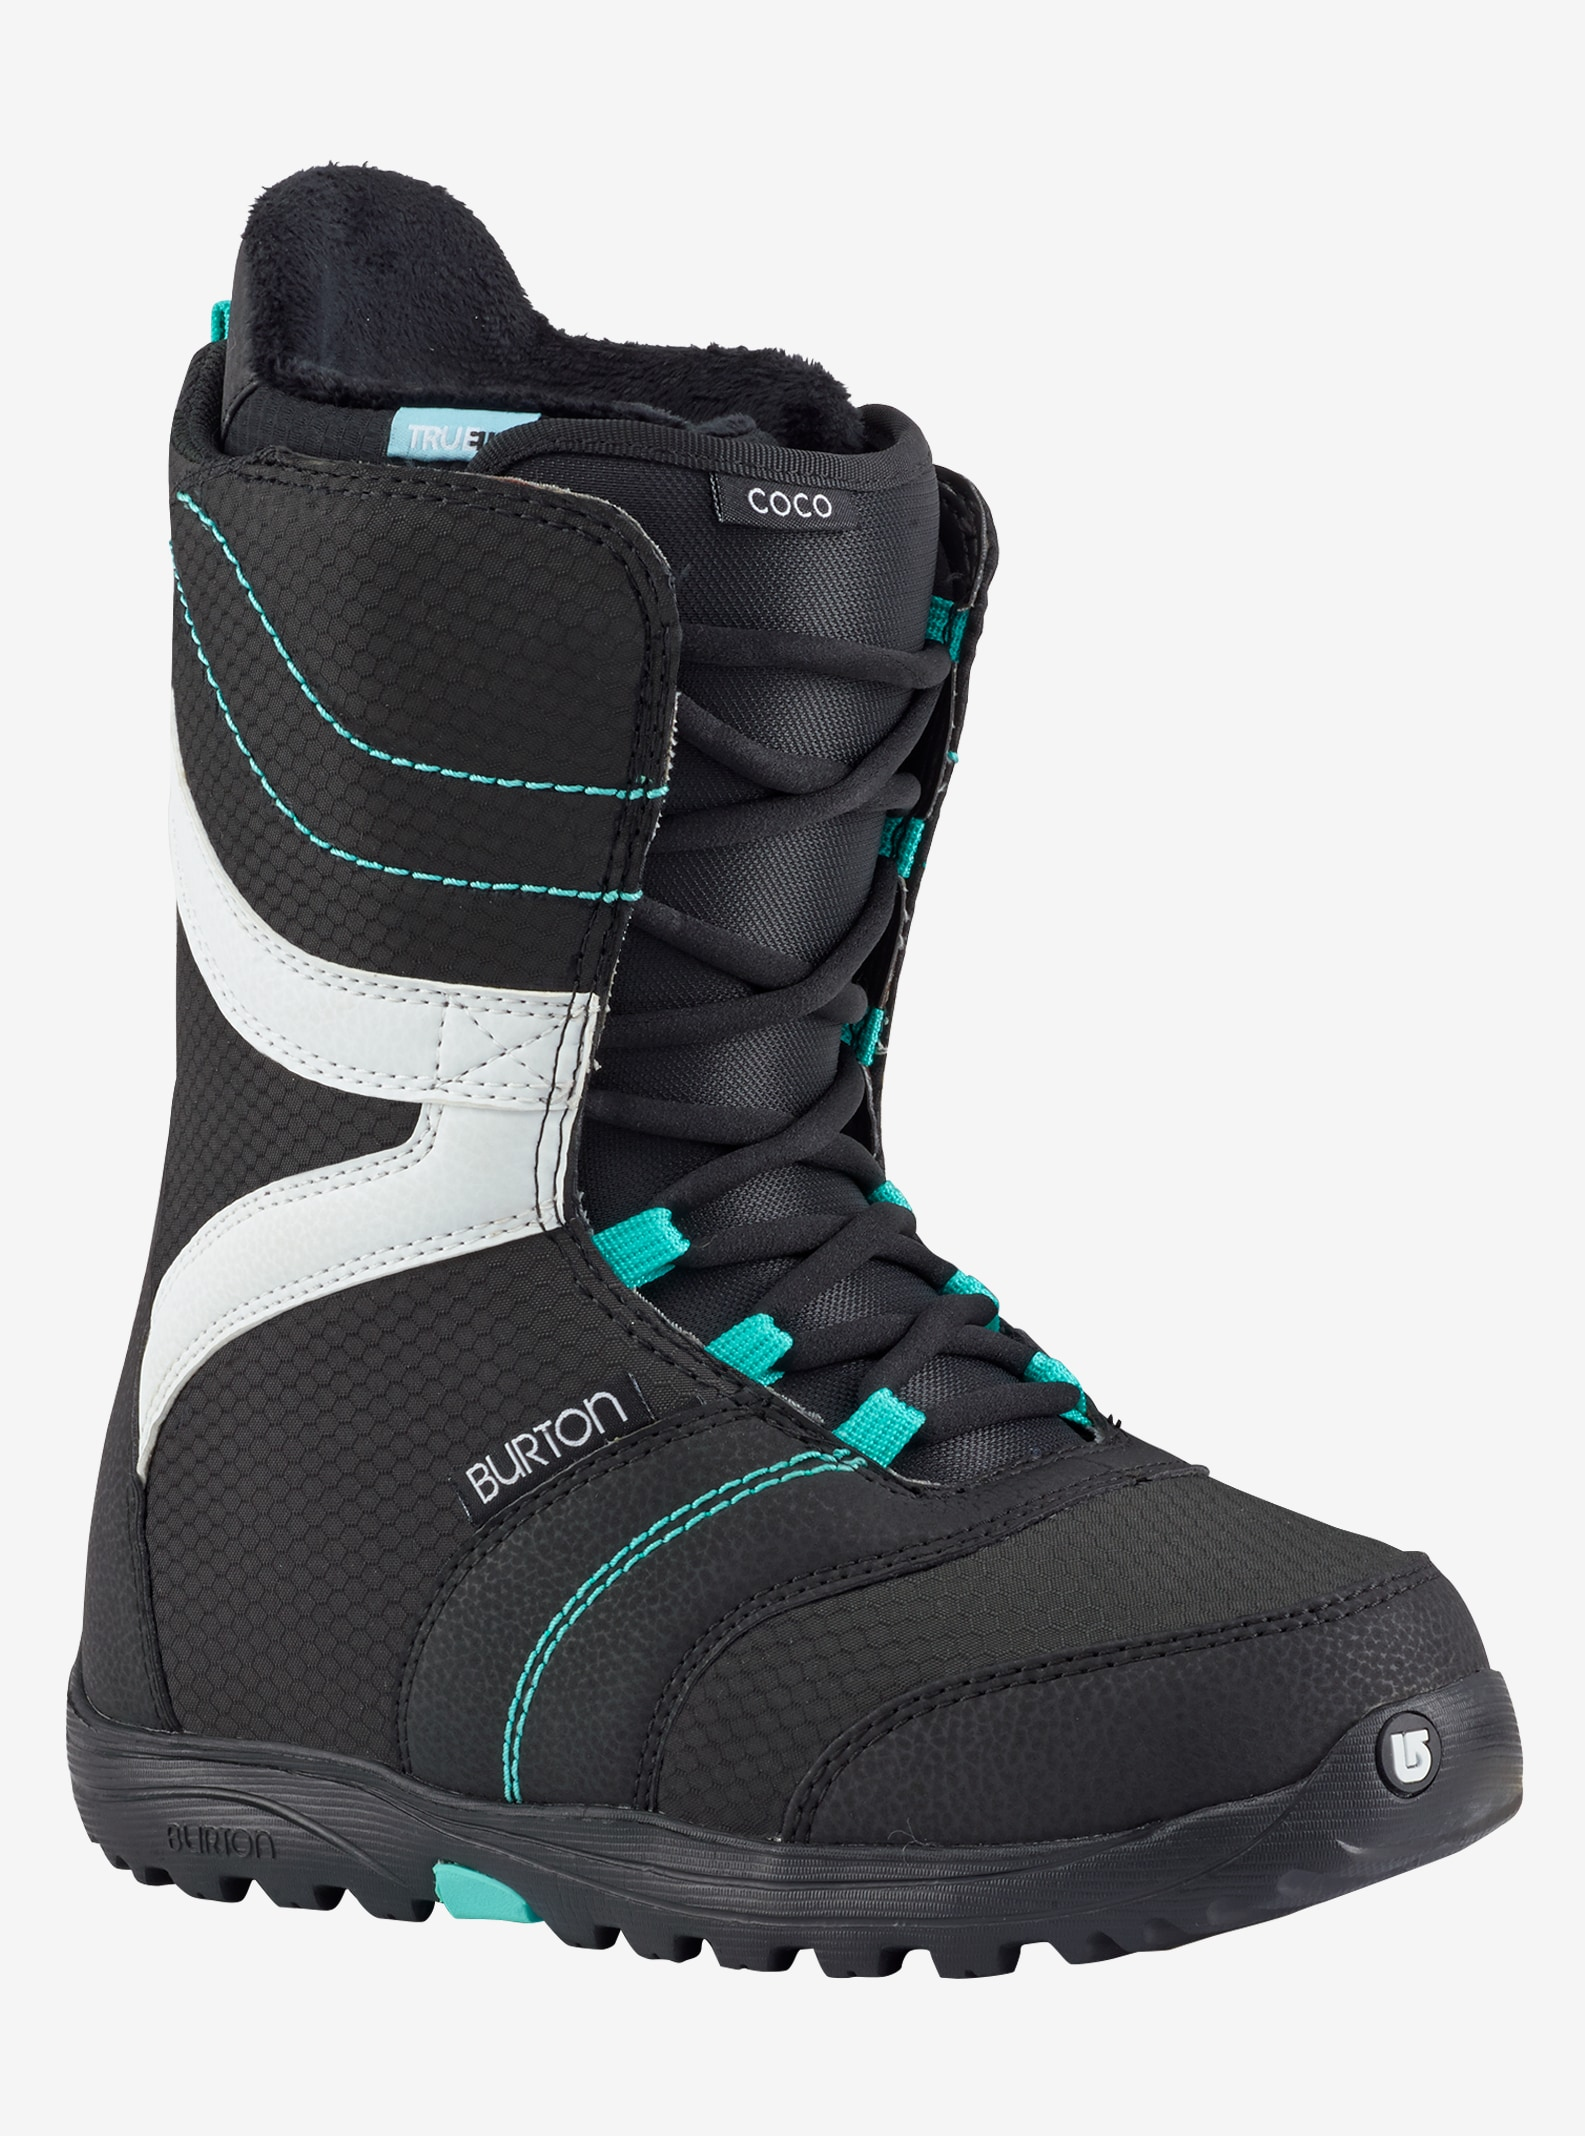 Women's Burton Coco Snowboard Boot shown in Black / Teal